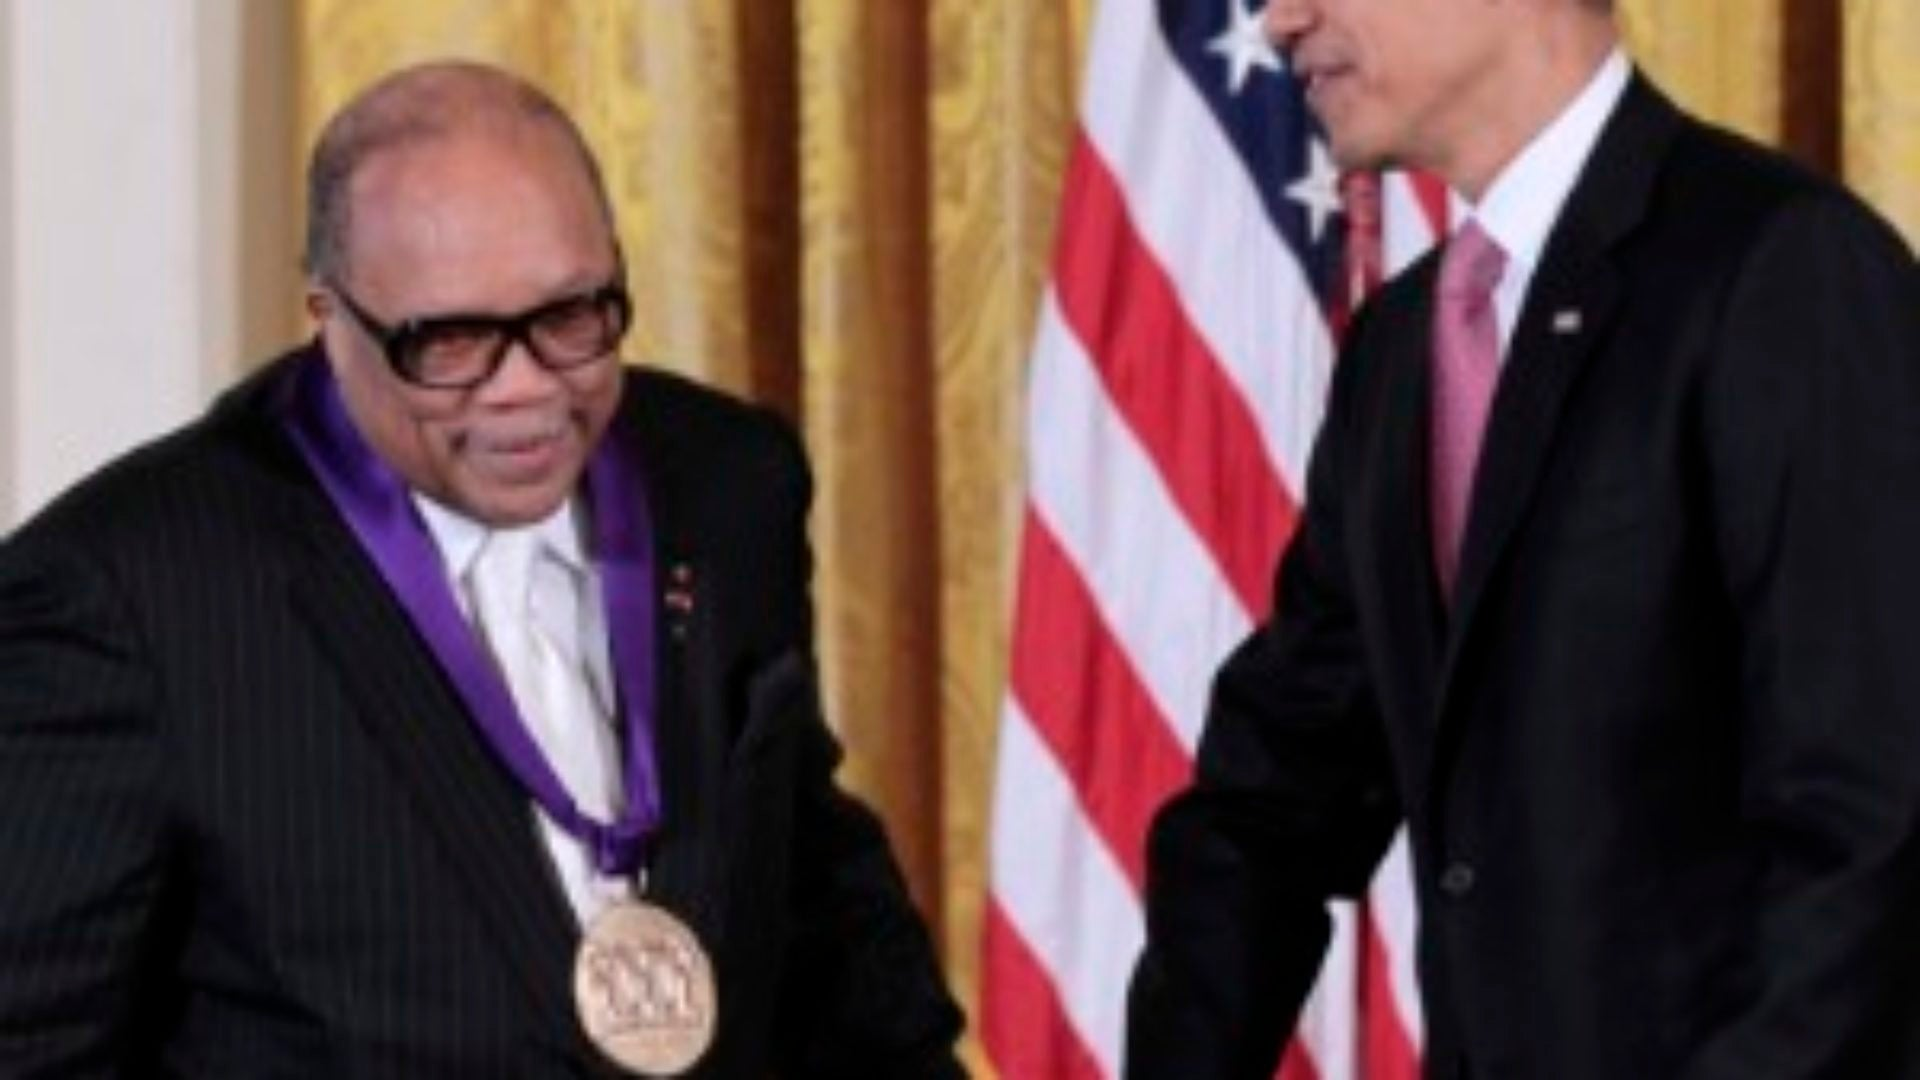 Obama Honors Quincy Jones with Arts Medal